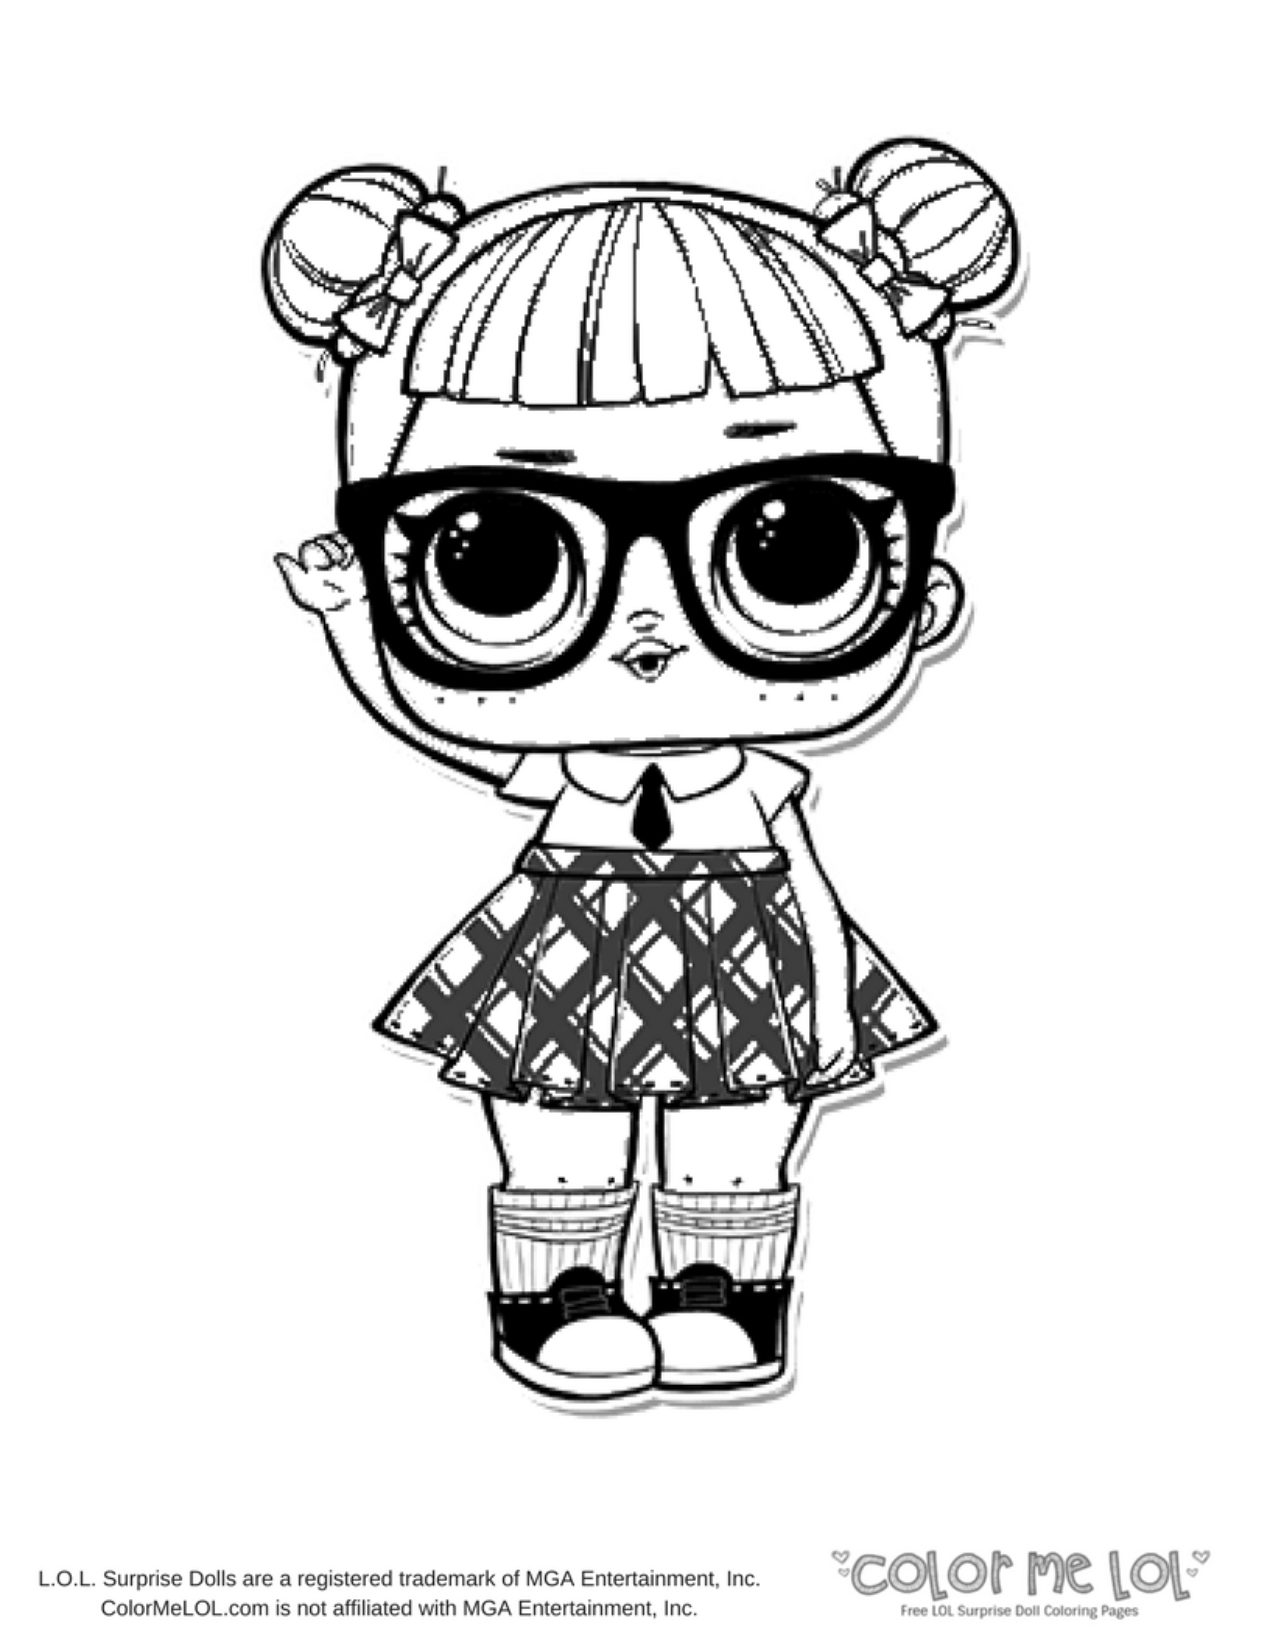 308 Lol Doll free clipart.